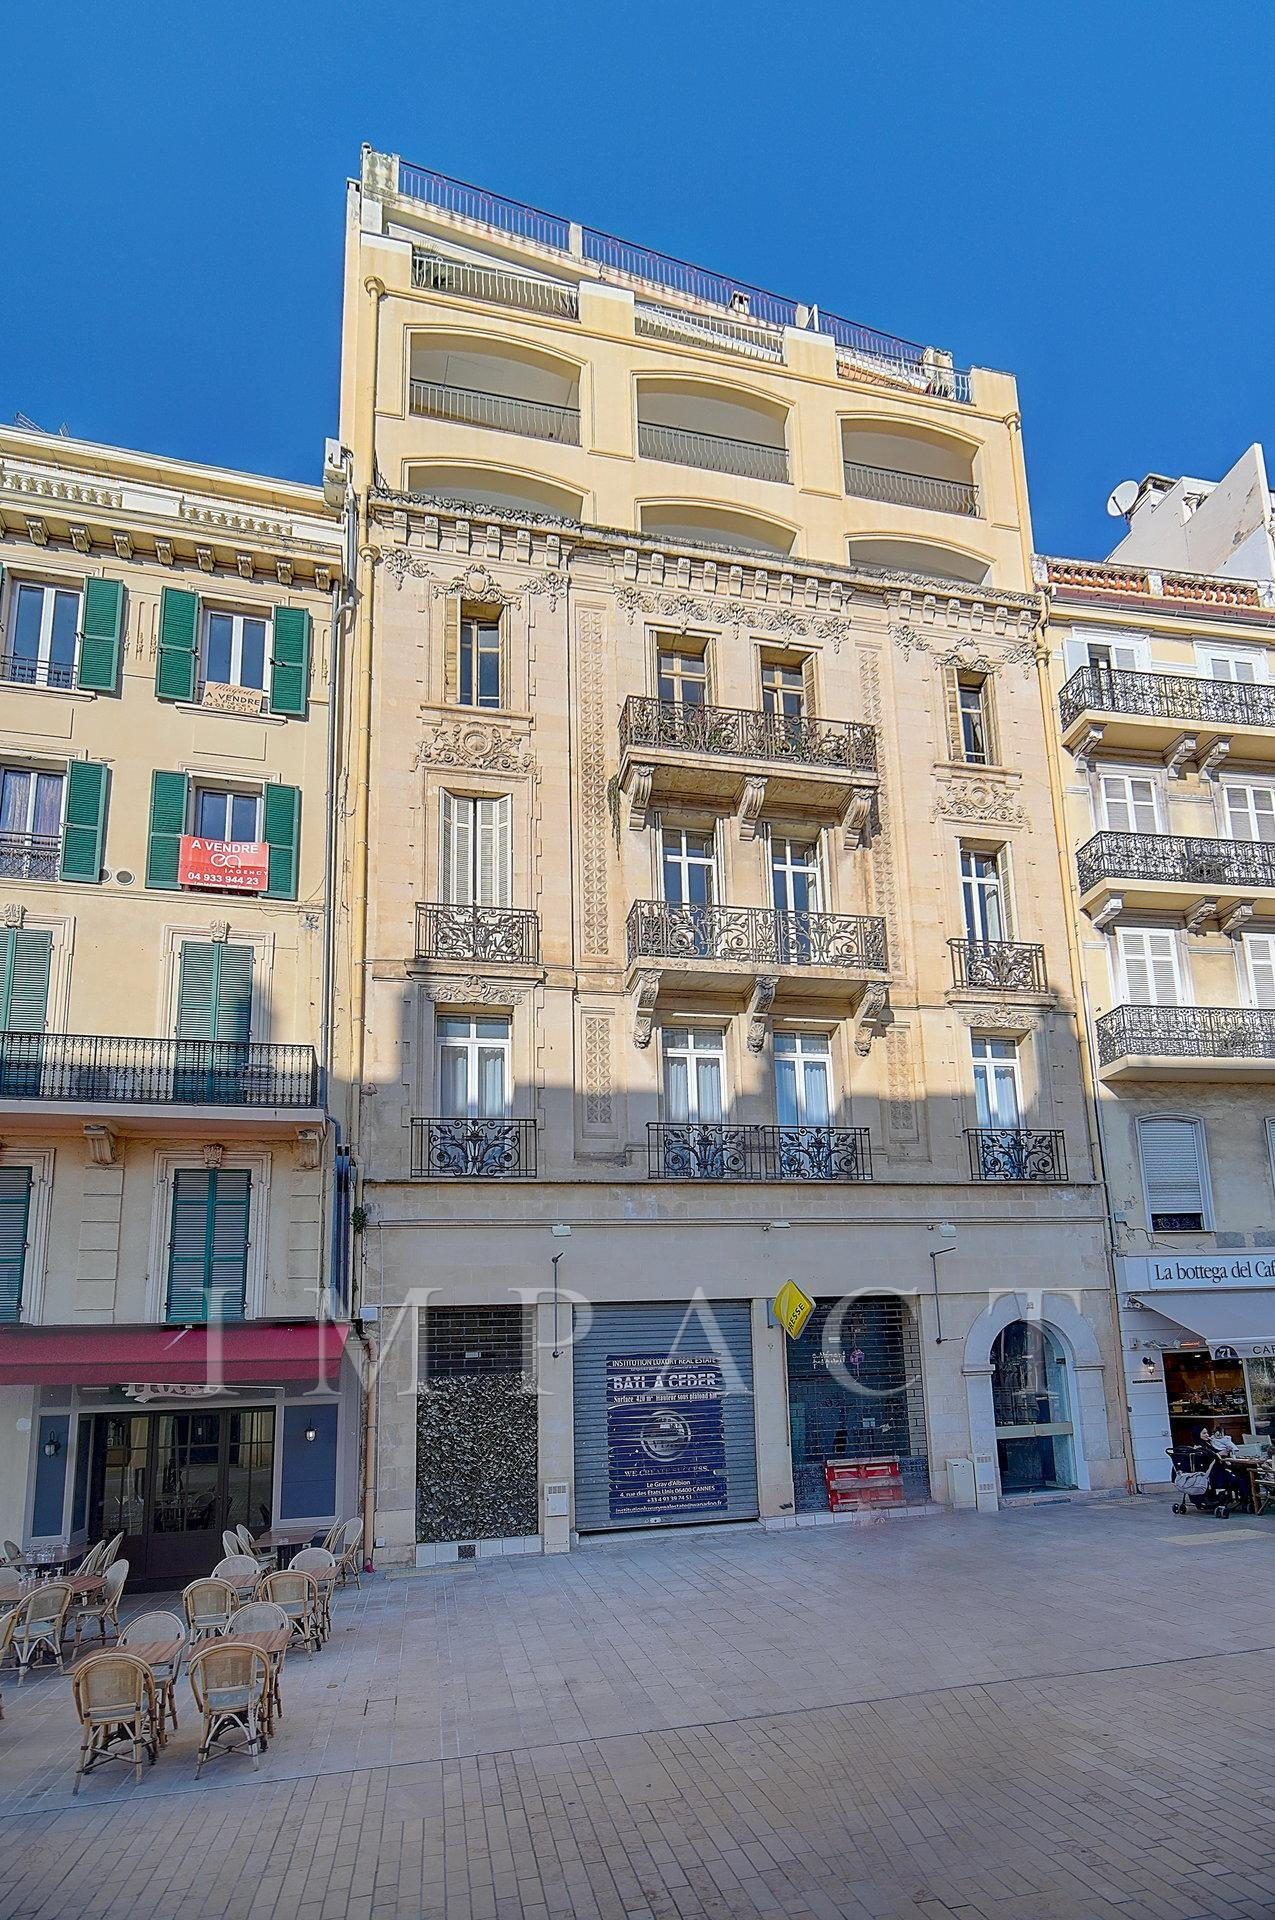 2-bedroom apartment to rent in front of the Palais des Festivals Cannes .